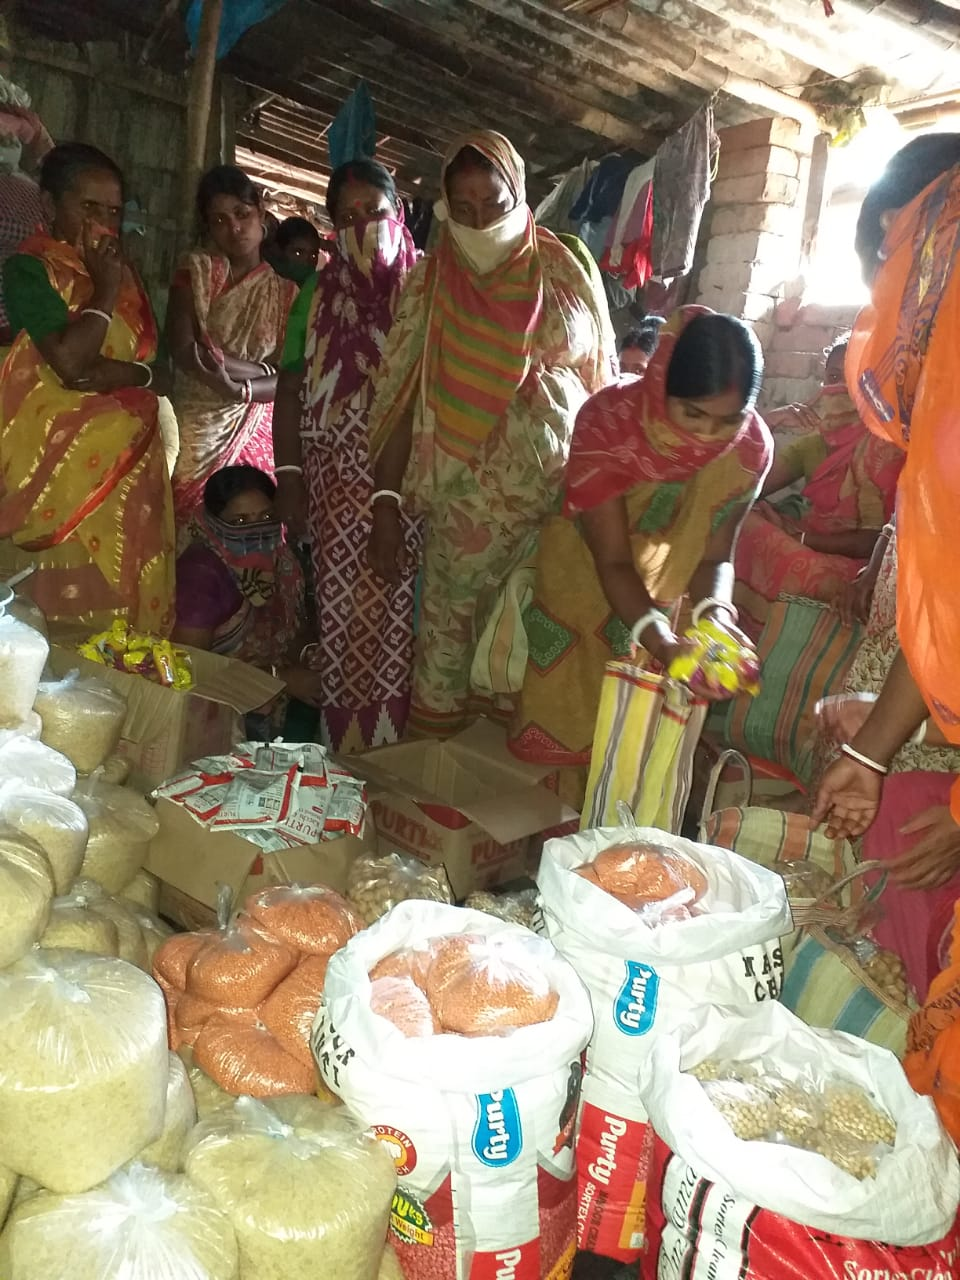 Mukti Distributed Dry Ration To The Shg Members At Jalaberia